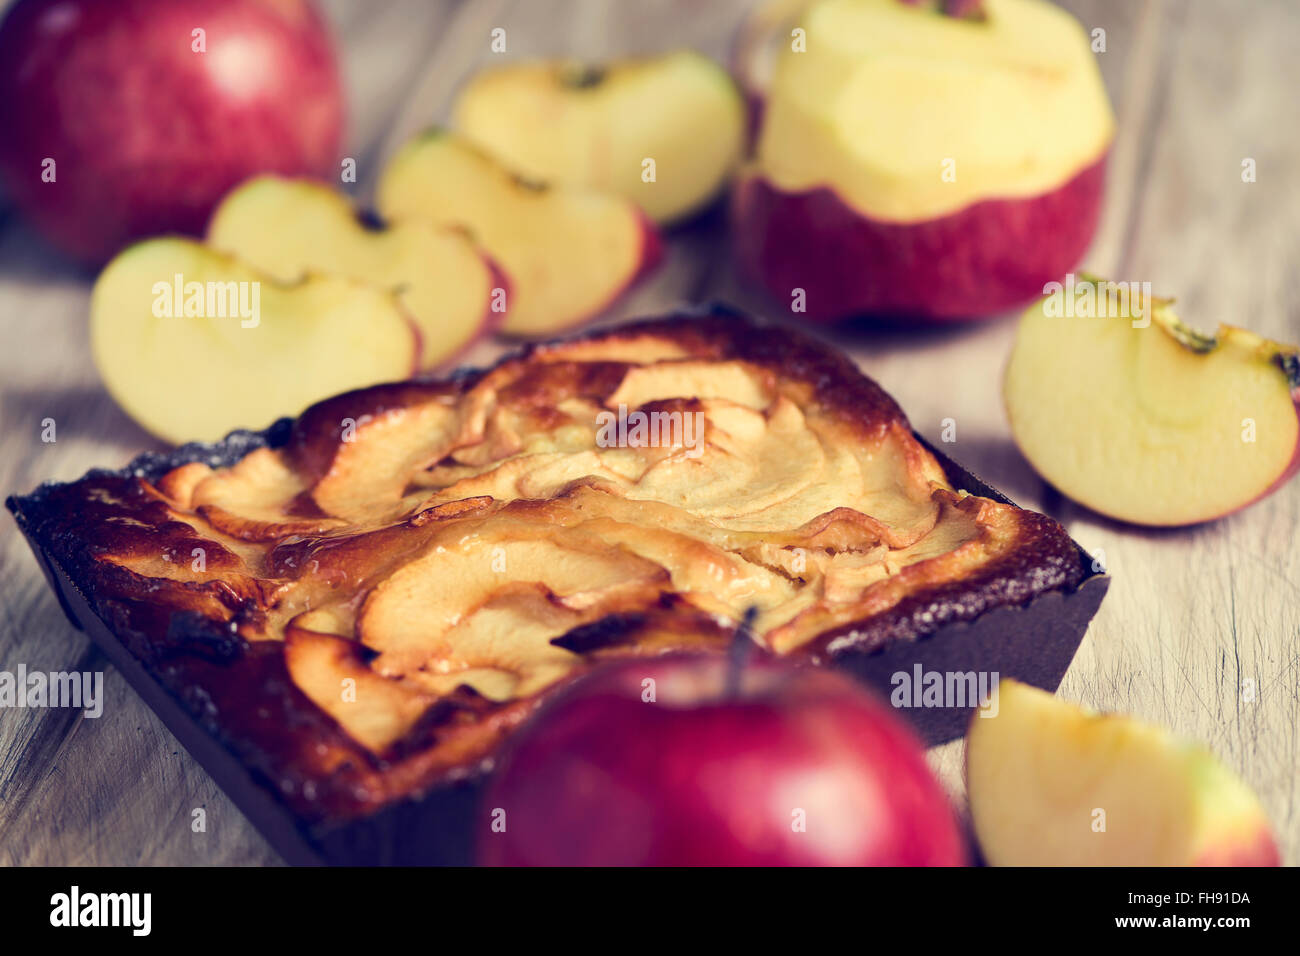 closeup of an apple cake and some red apples on a rustic wooden table - Stock Image